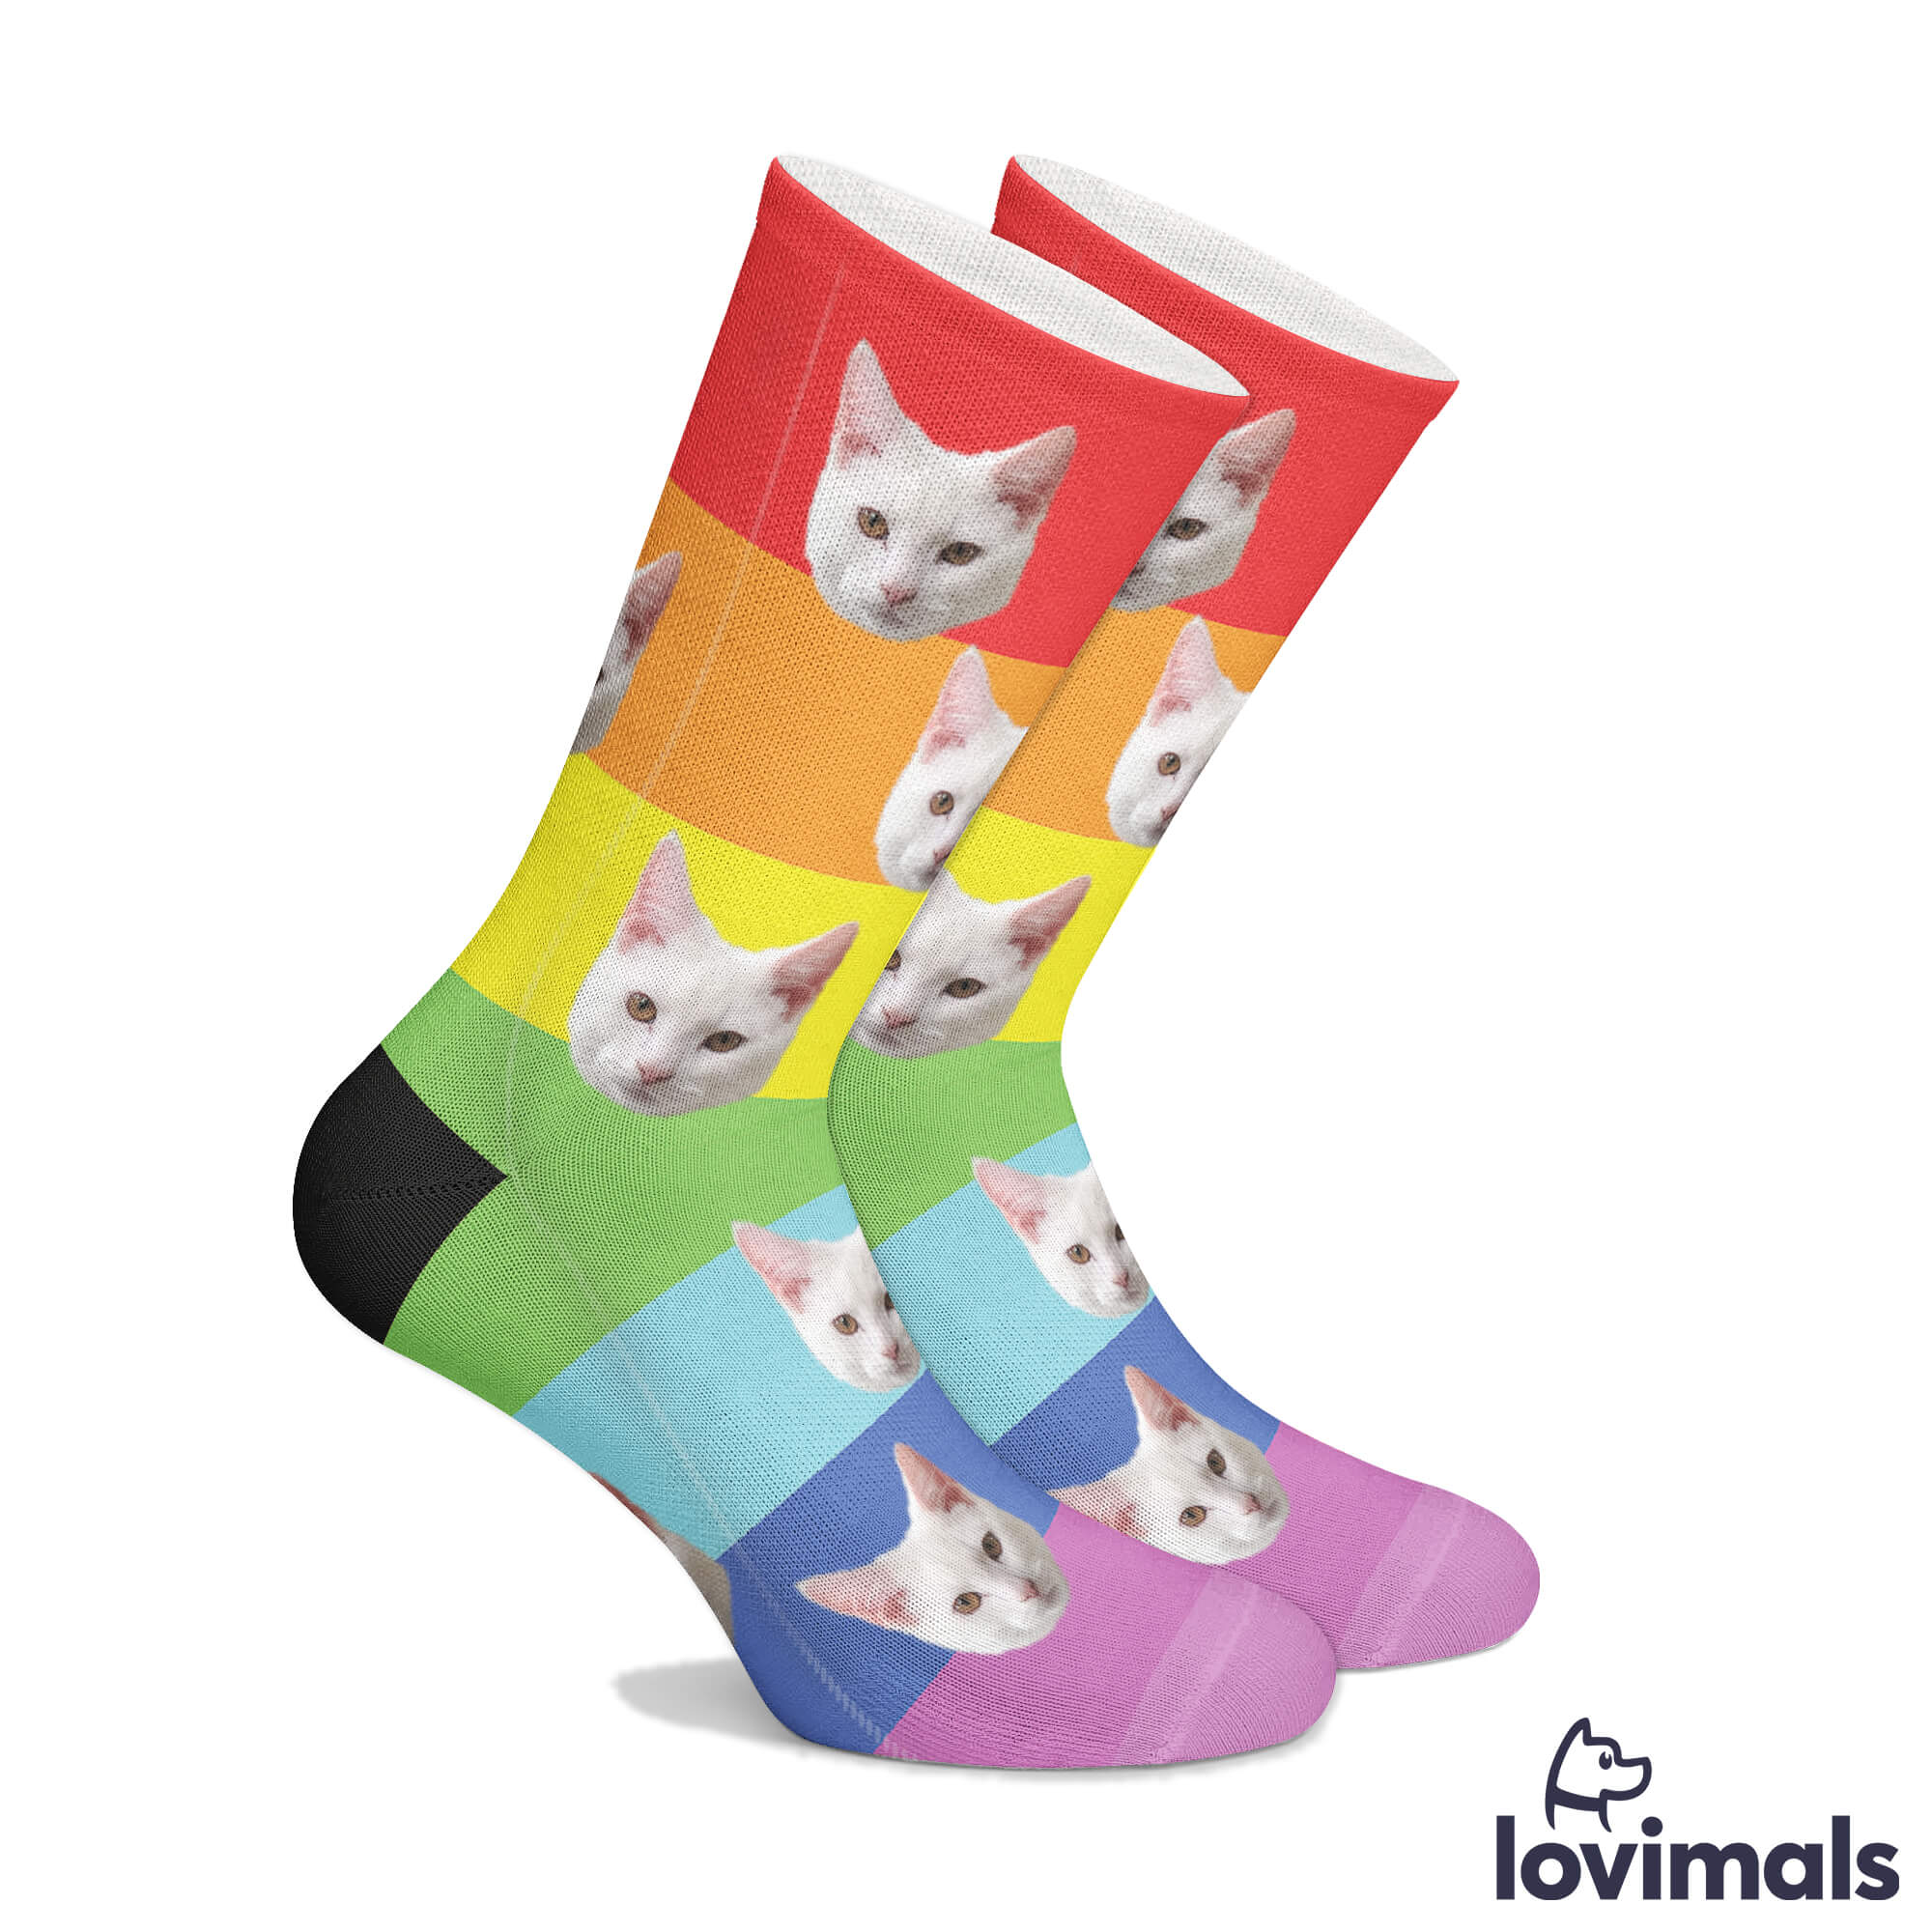 Personalized Pride Socks